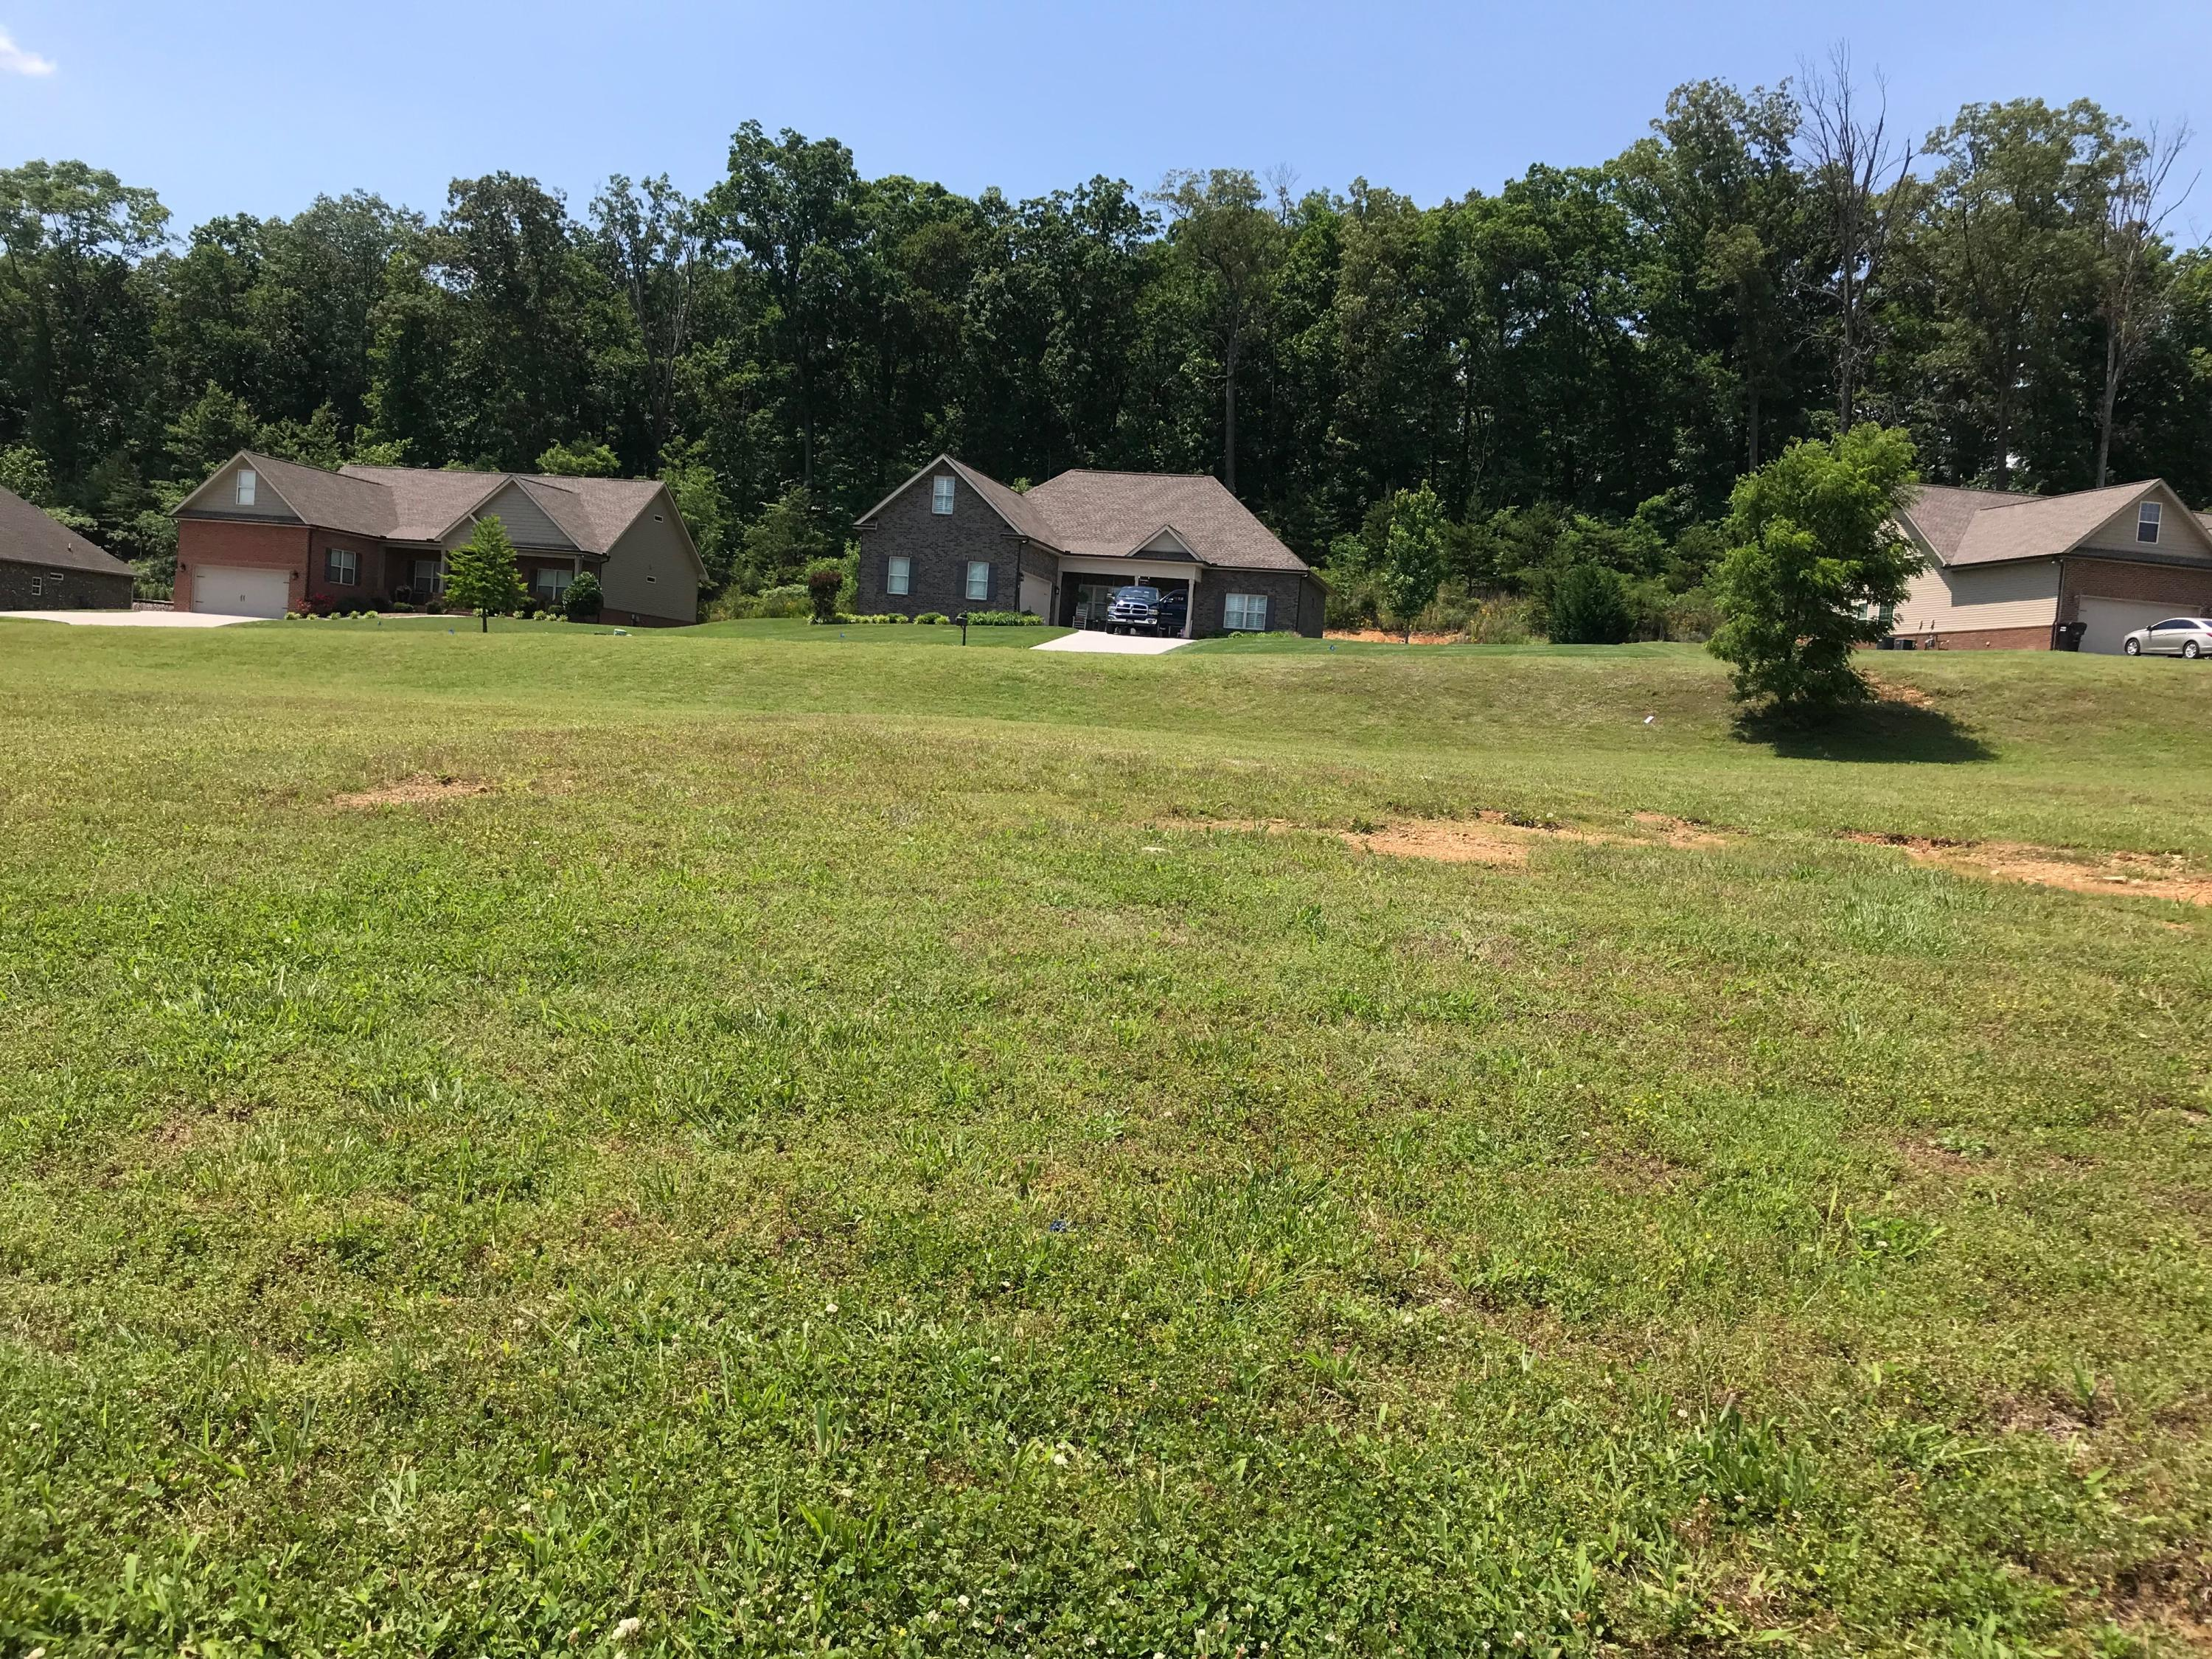 550 Jacksonian Way, Lenoir City, Tennessee 37772, ,Lots & Acreage,For Sale,Jacksonian,1080823